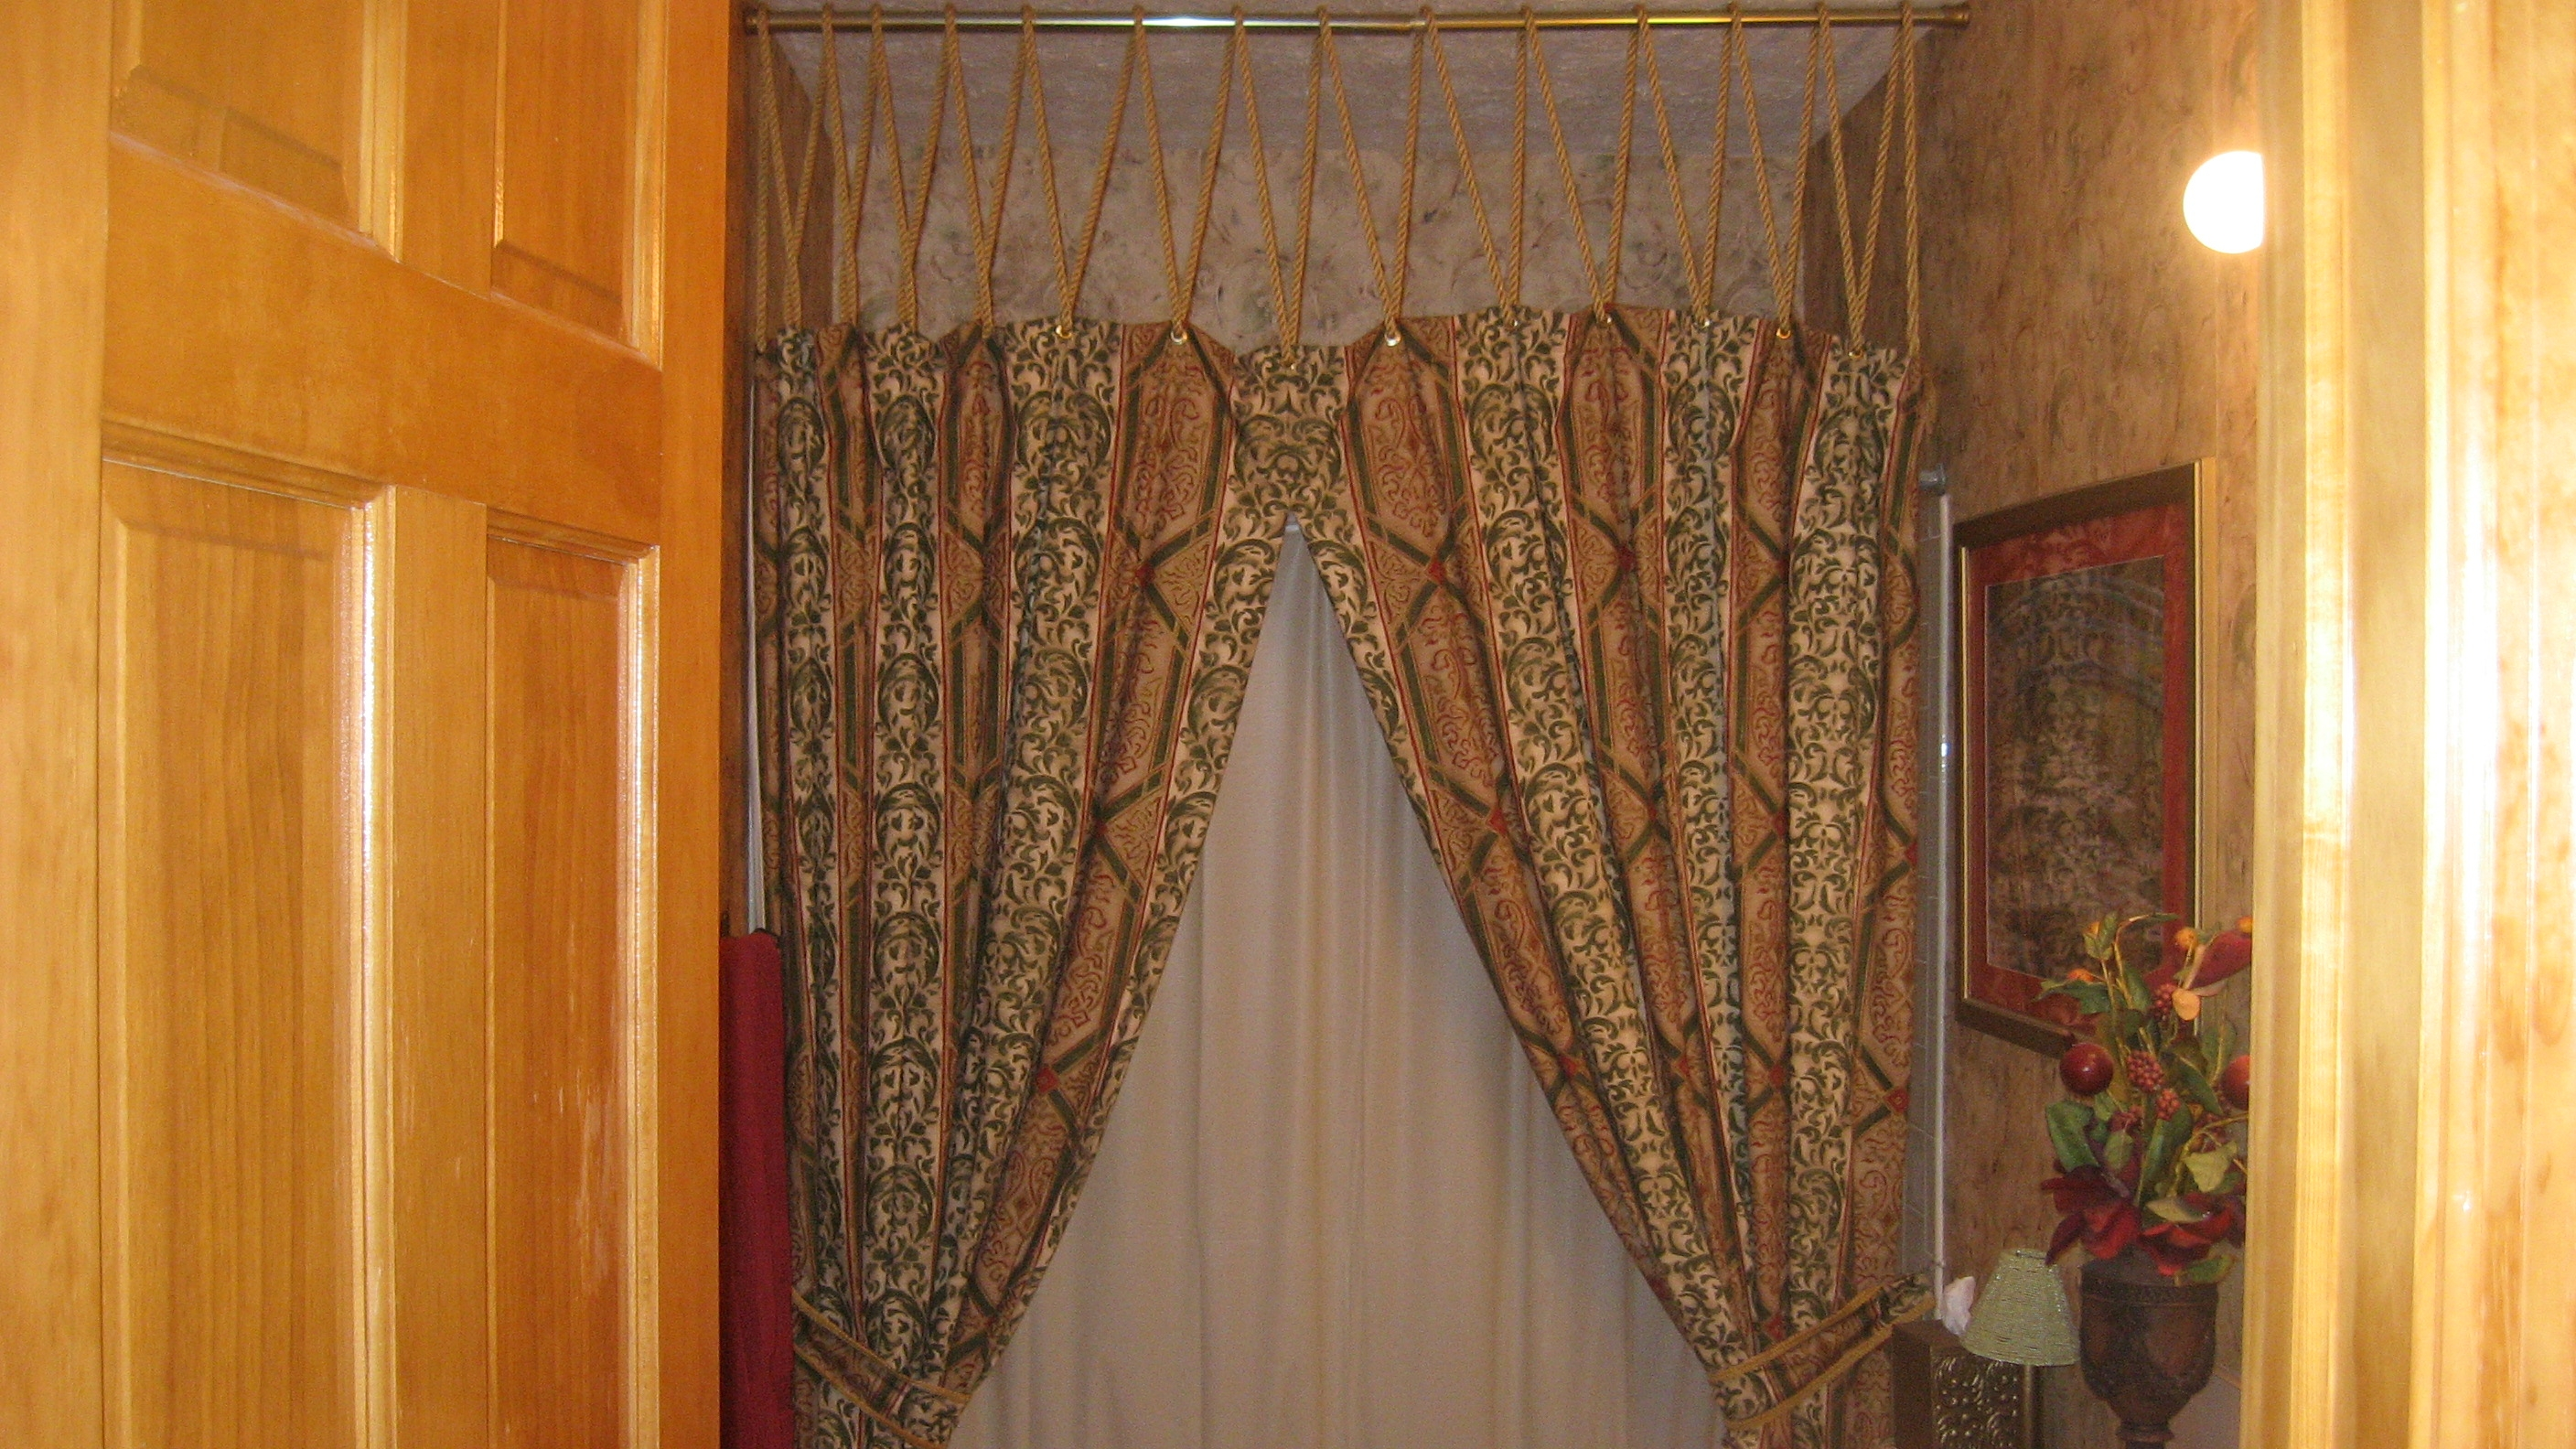 Decorations Shower Stall Curtains Swag Shower Curtain Shower Throughout Double Panel Shower Curtains (View 23 of 25)